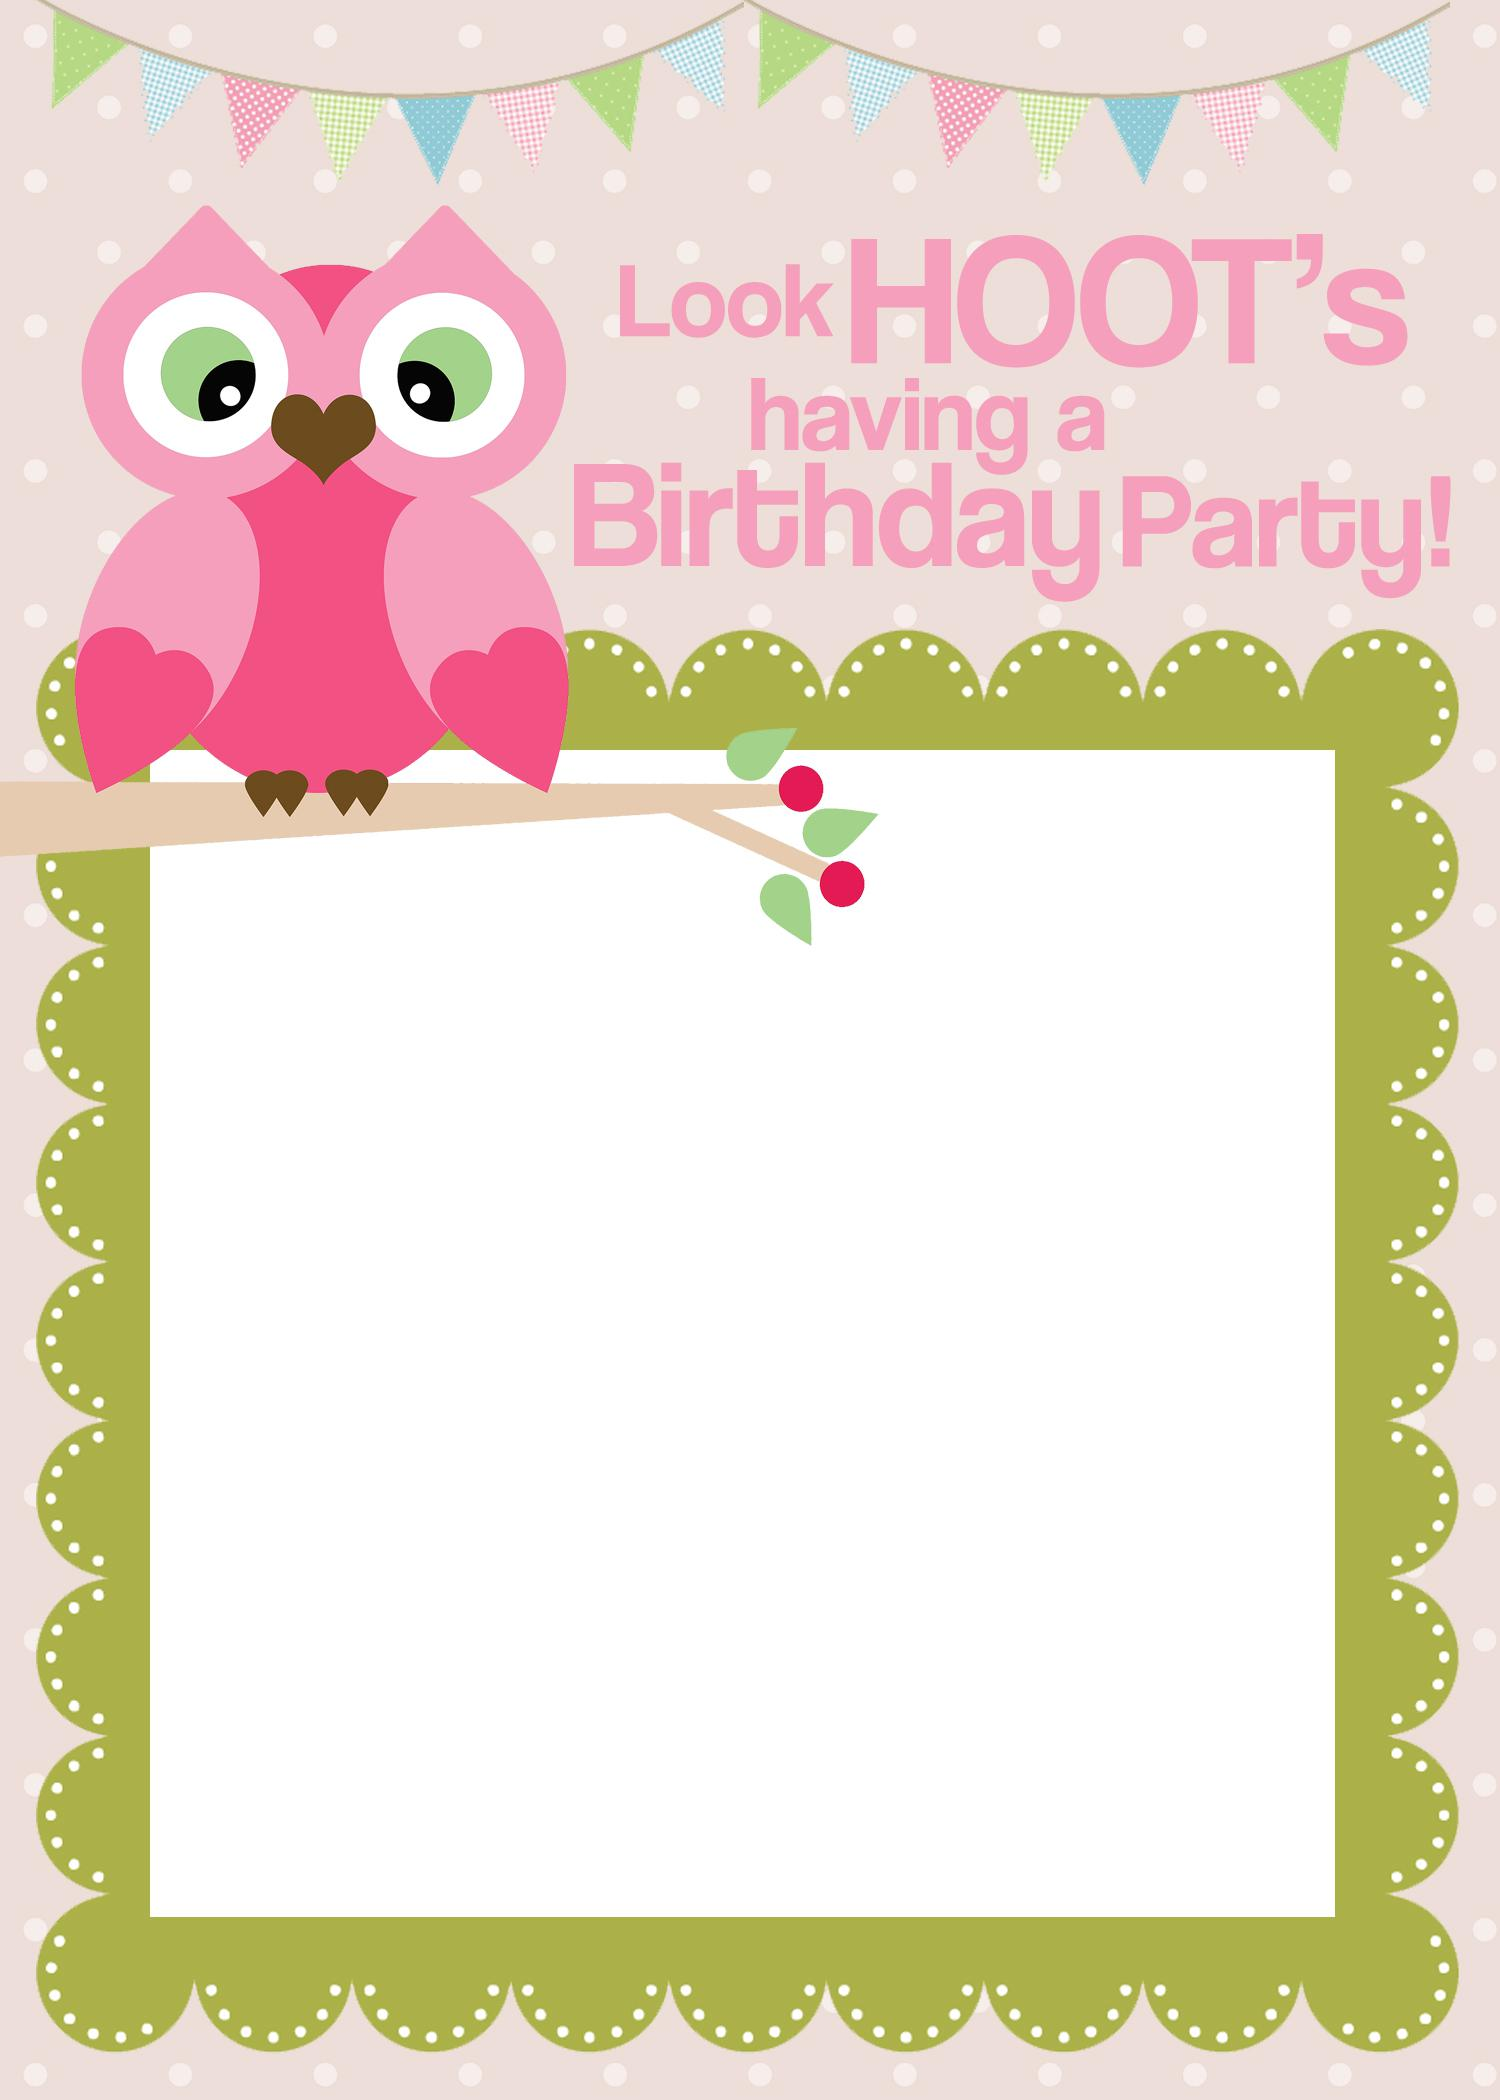 free printable birthday invitation cards templates ; Free-Printable-Birthday-Party-Invitations-Templates